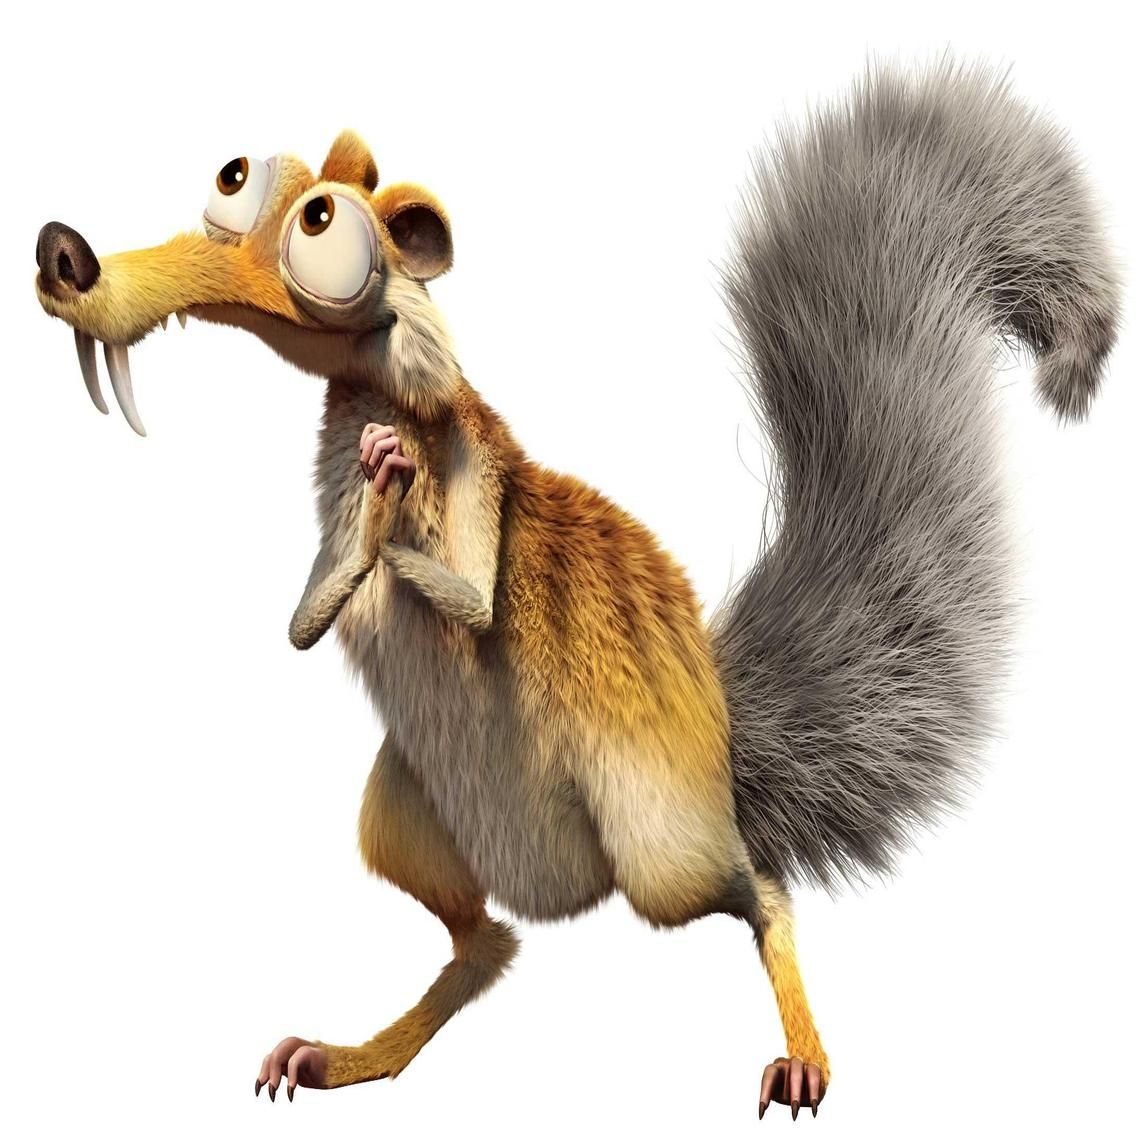 Ice age 5 clipart banner stock Pin by Ella Paschke on Scrat from ice age | Ice age, Ice age ... banner stock